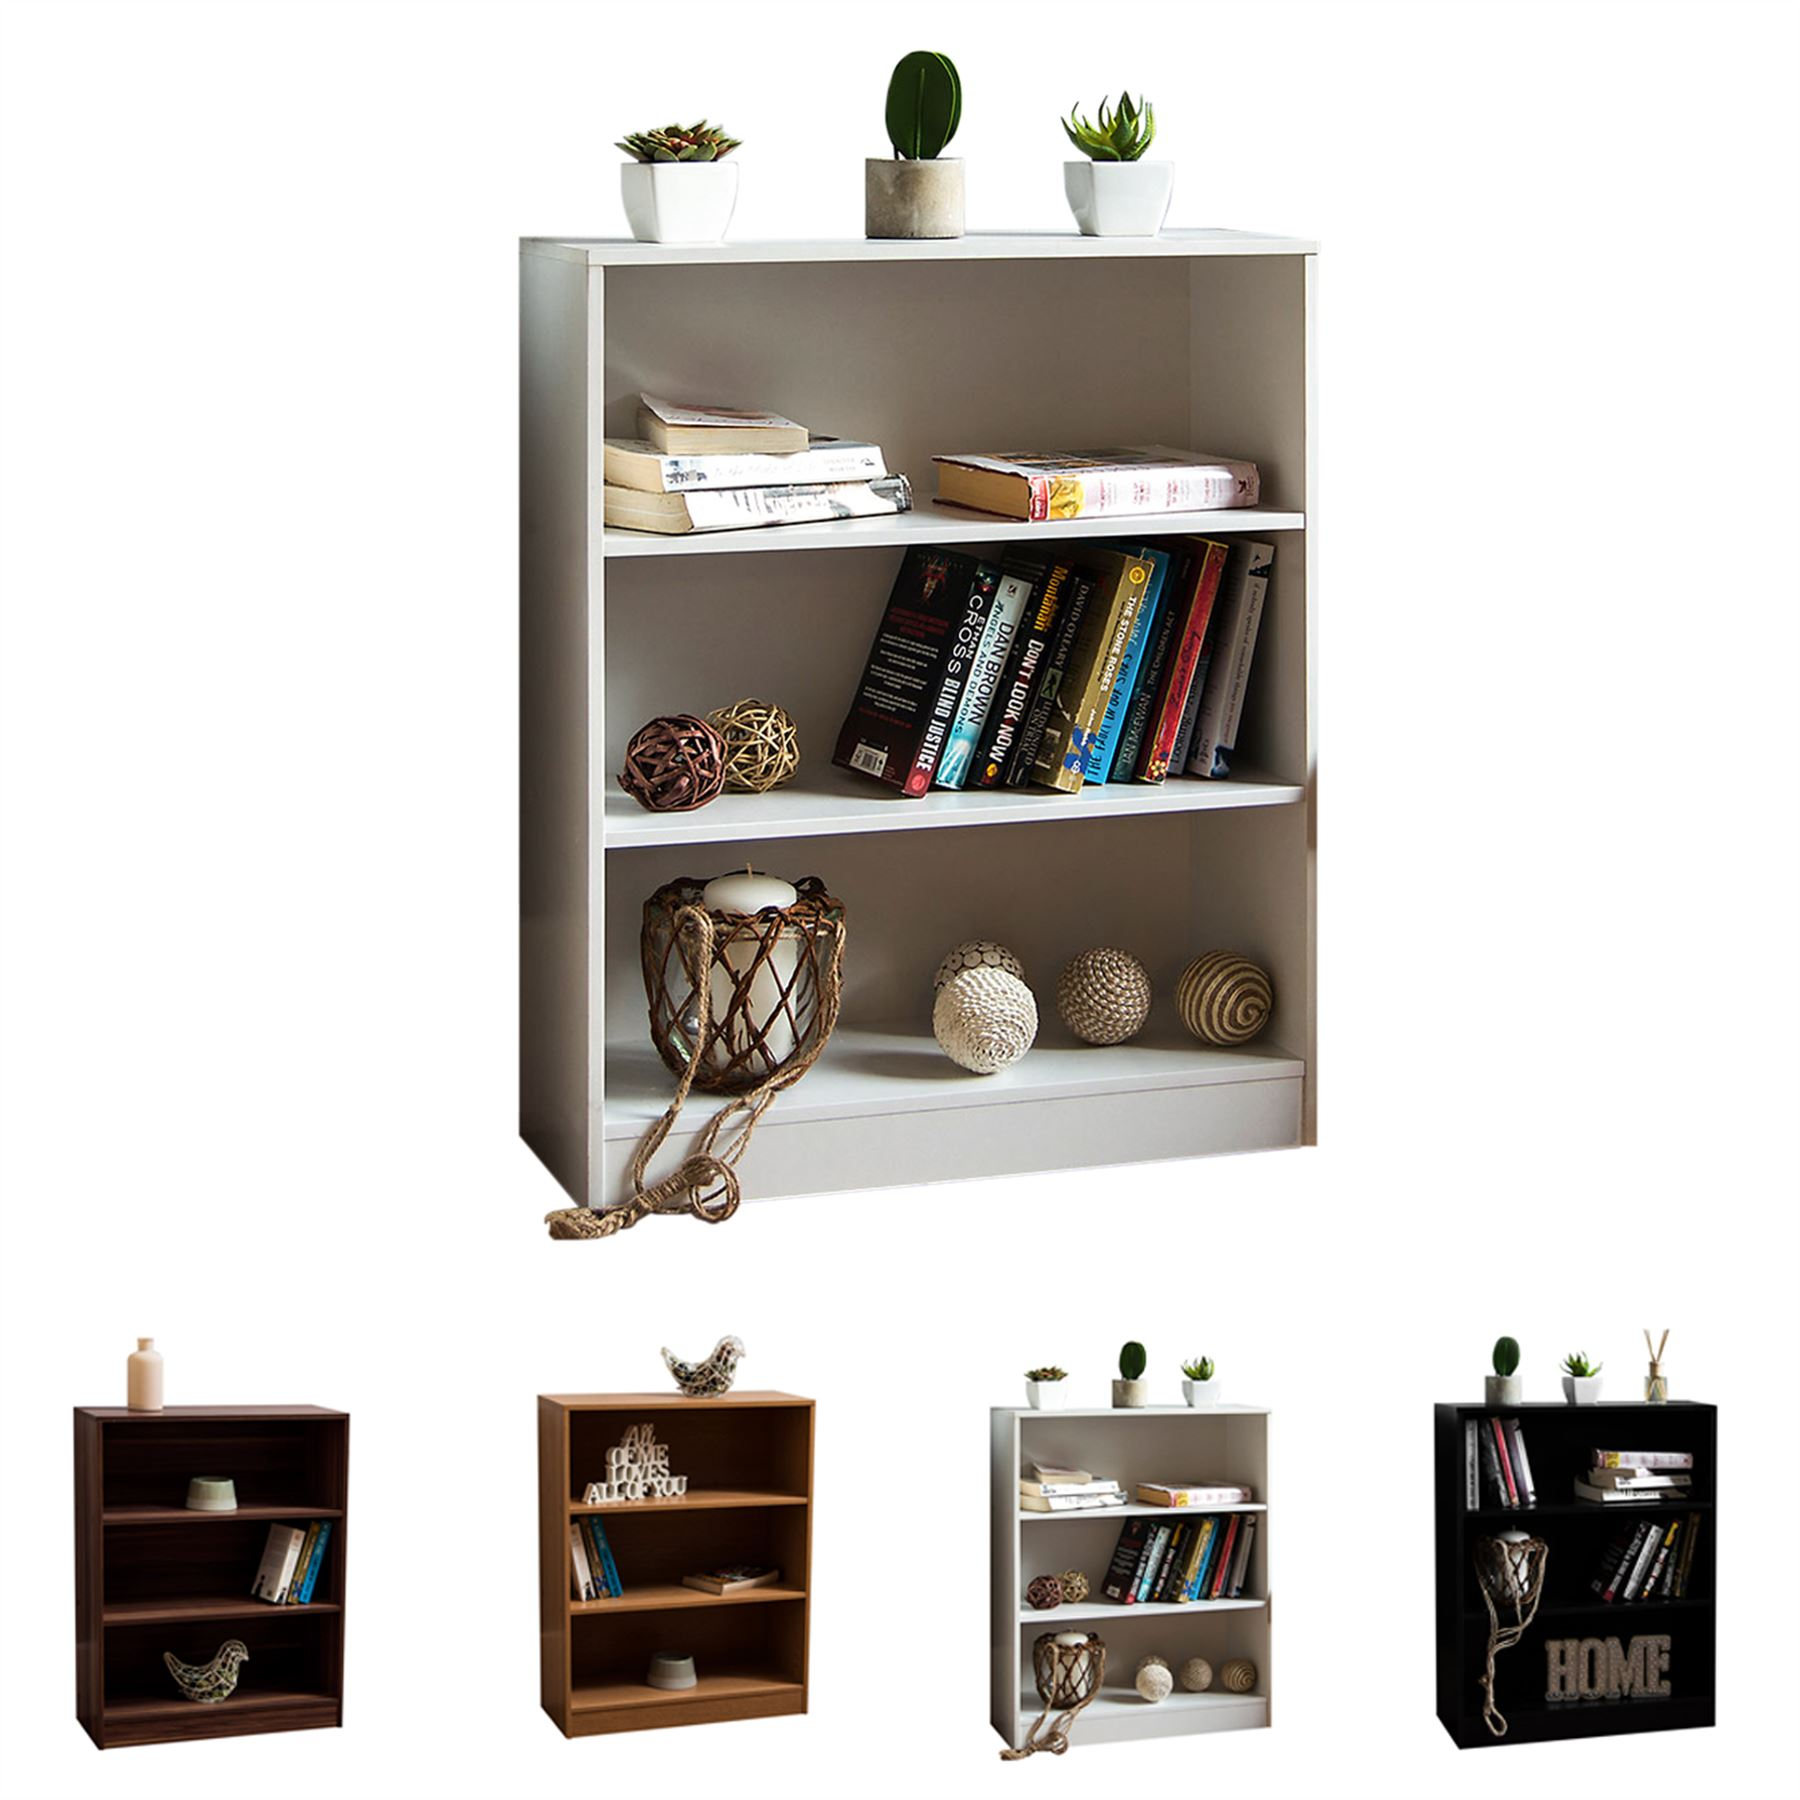 Details About Cambridge 3 Tier Low Bookcase Display Shelving Storage Unit Wood Stand Shelves